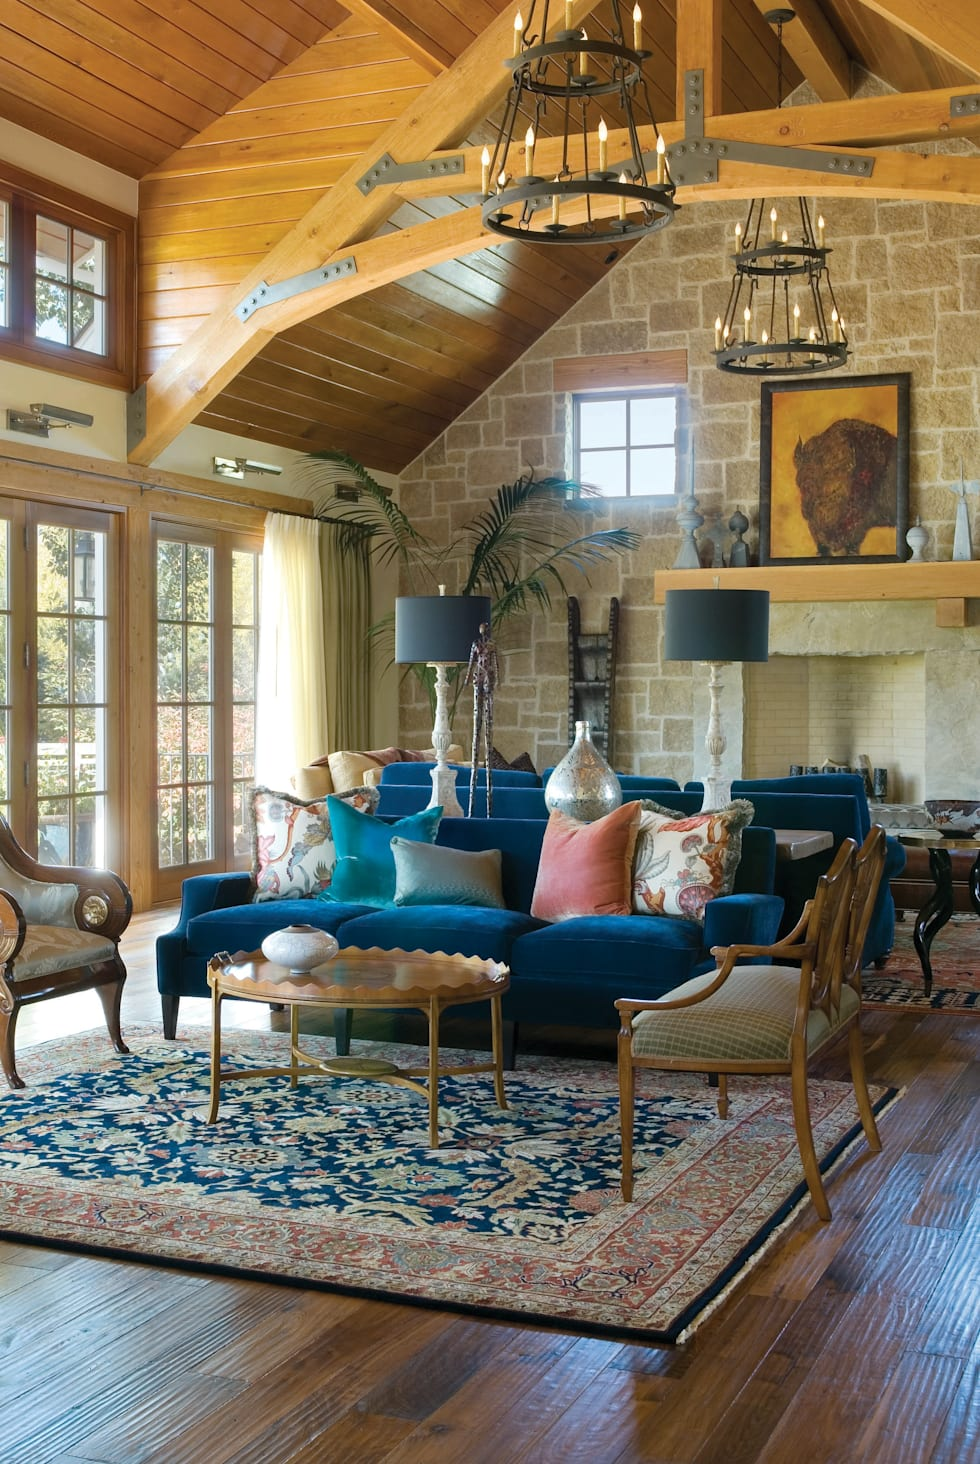 A charm-filled restoration dream home